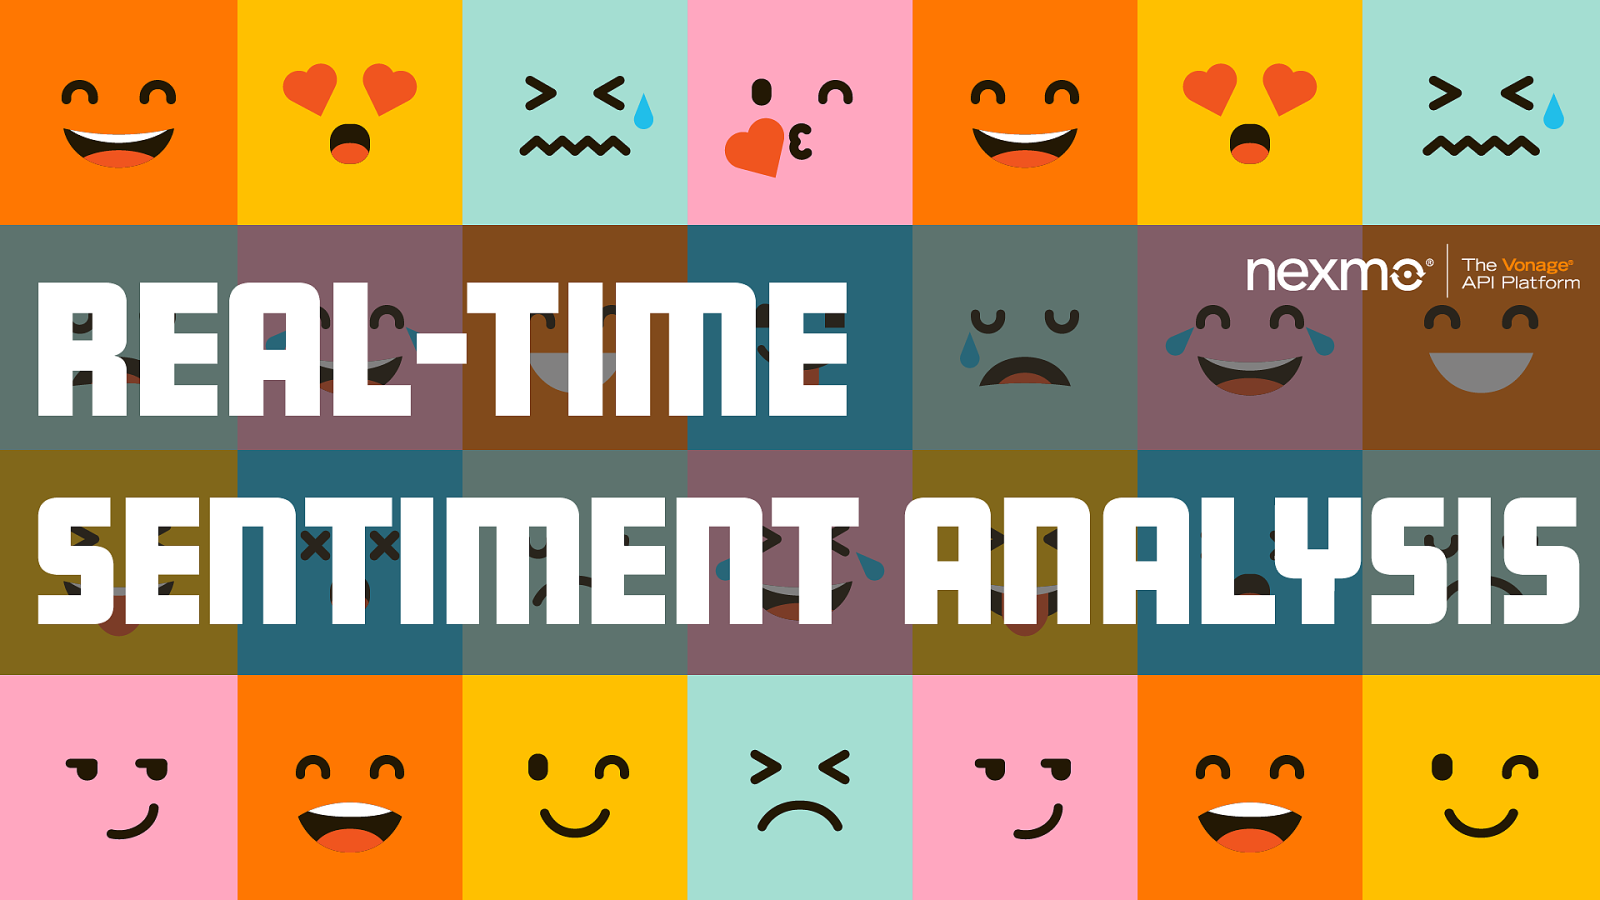 Real-time transcription and sentiment analysis of audio streams; on the phone and in the browser